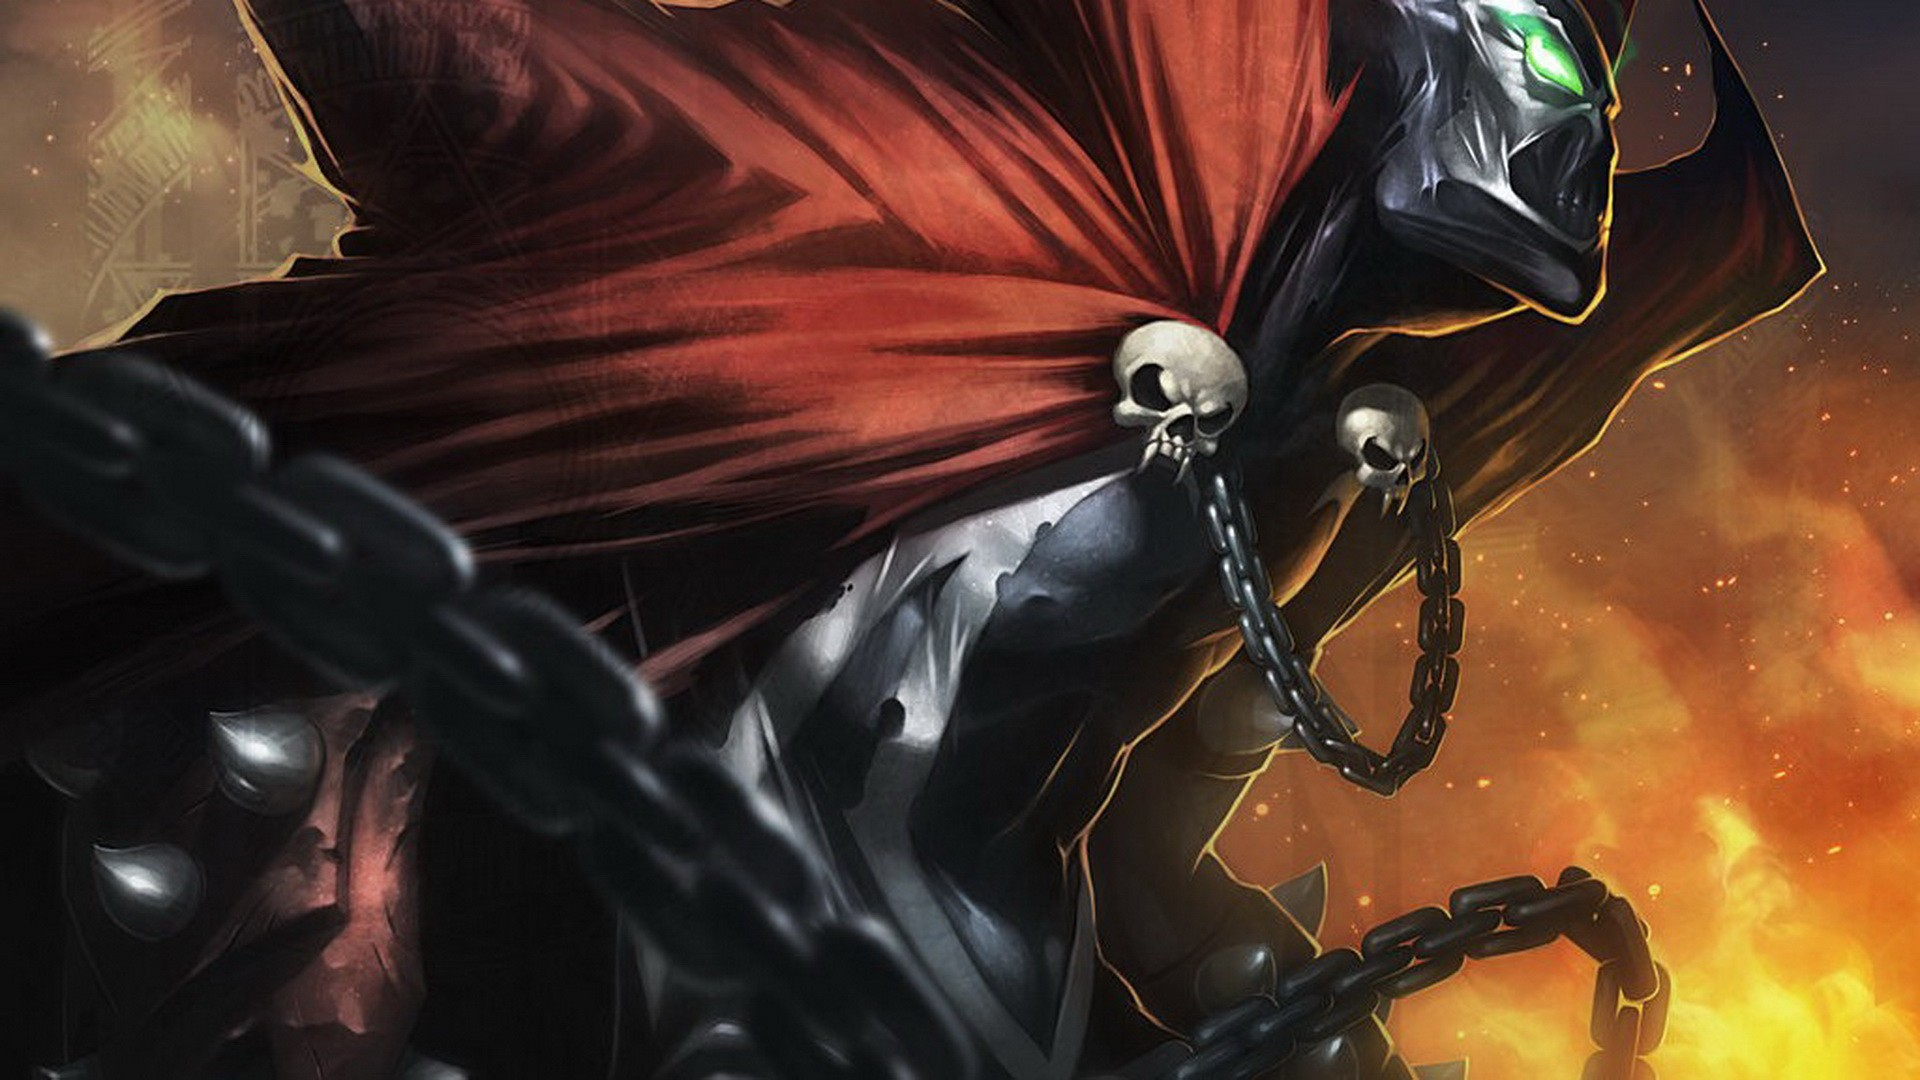 spawn wallpapers 1920x1080 - photo #11